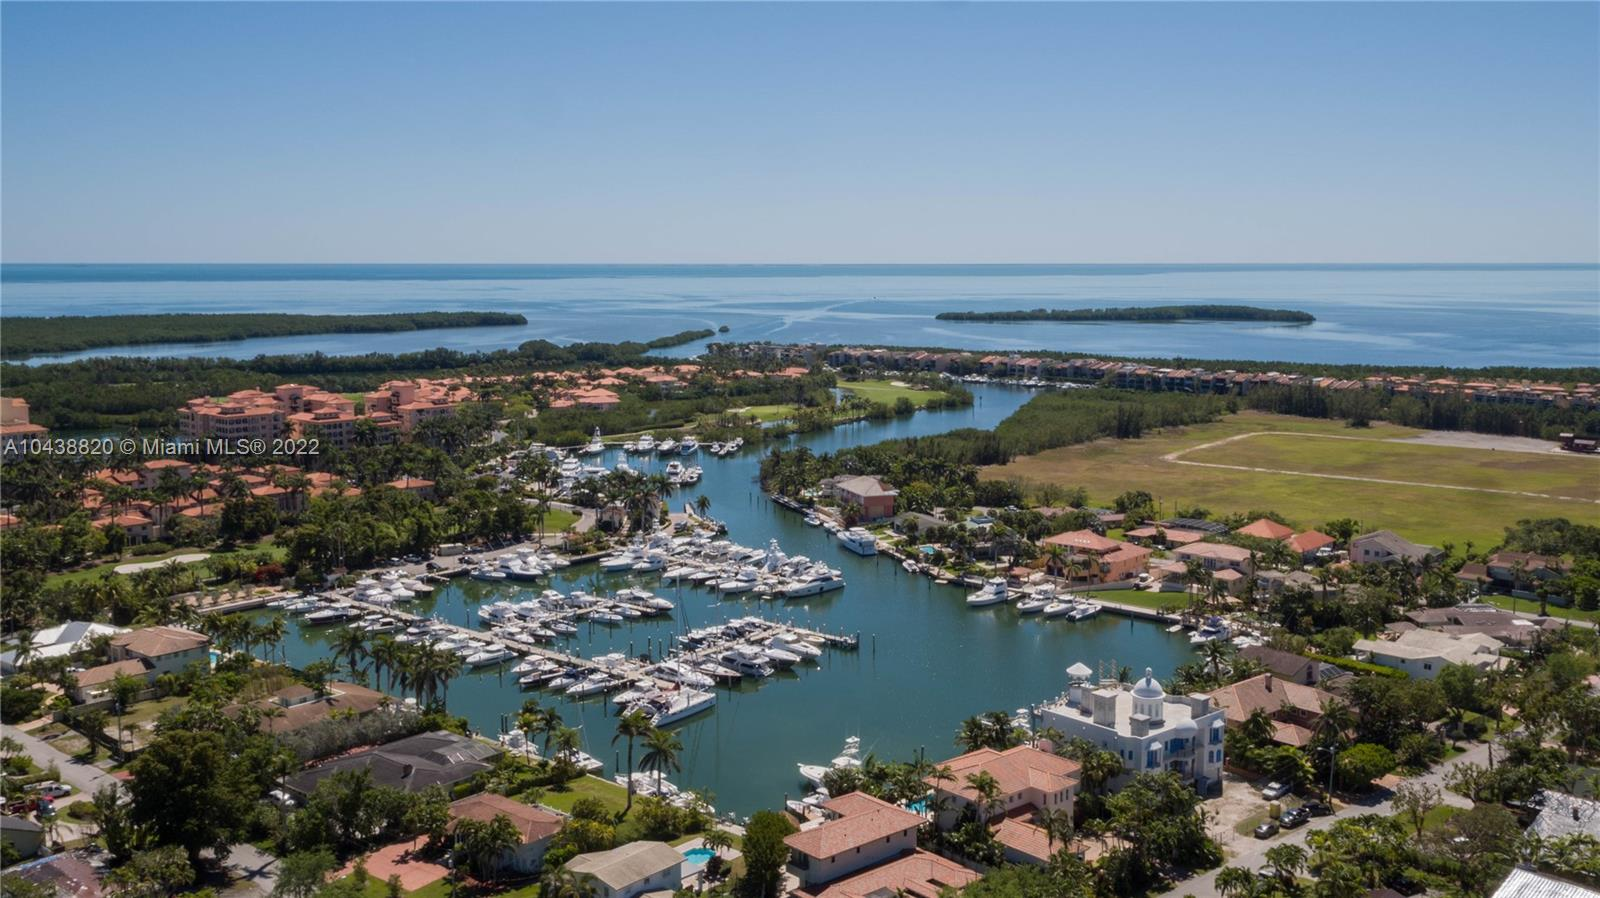 6275 Dolphin Dr, Coral Gables, FL 33158